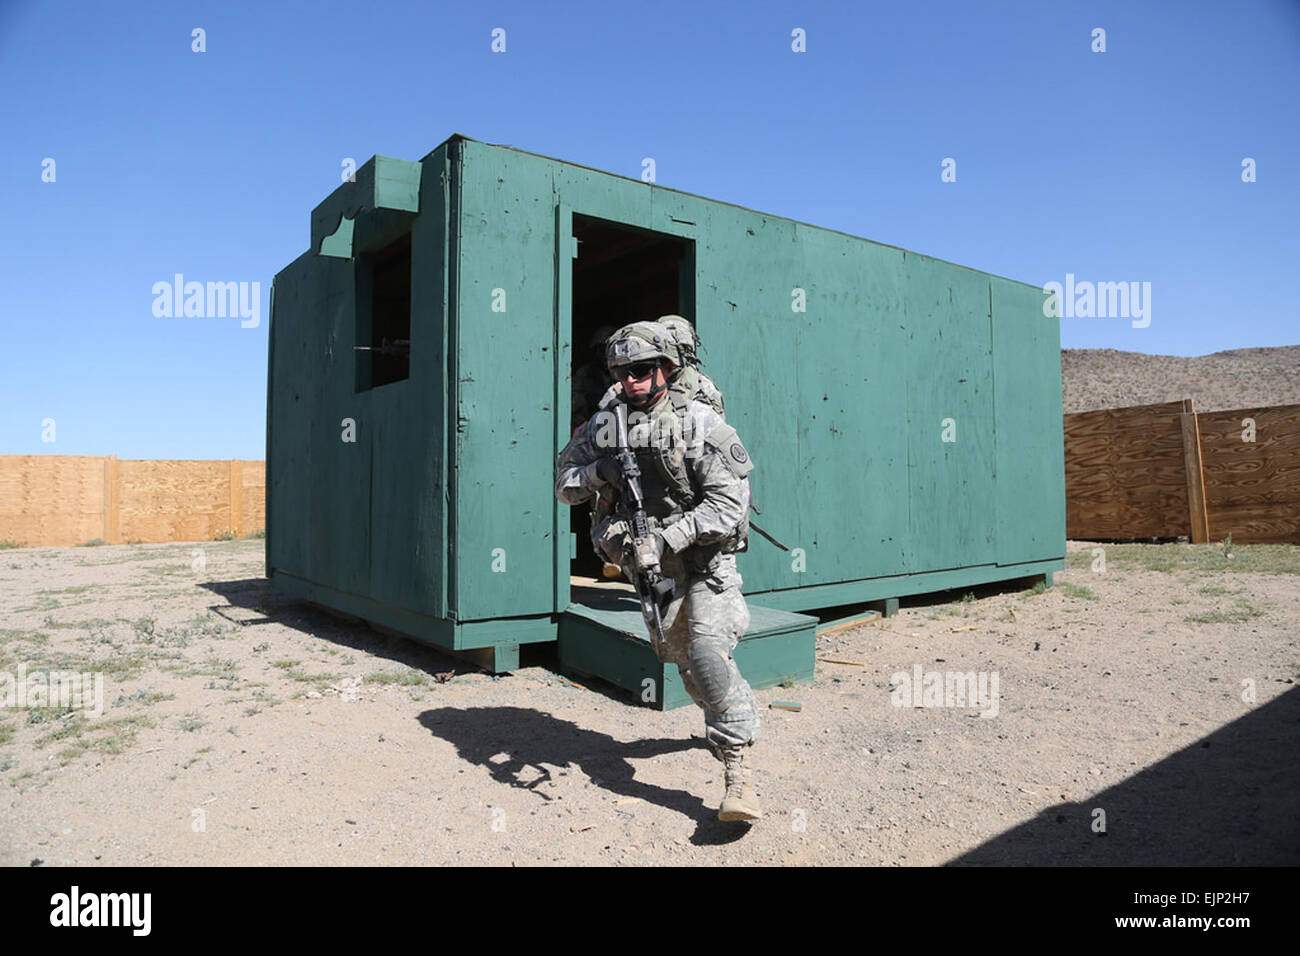 FORT IRWIN, Calif. - U. S. Army Soldiers from 3rd Cavalry Regiment 'Brave Rifles' exit a building after - Stock Image